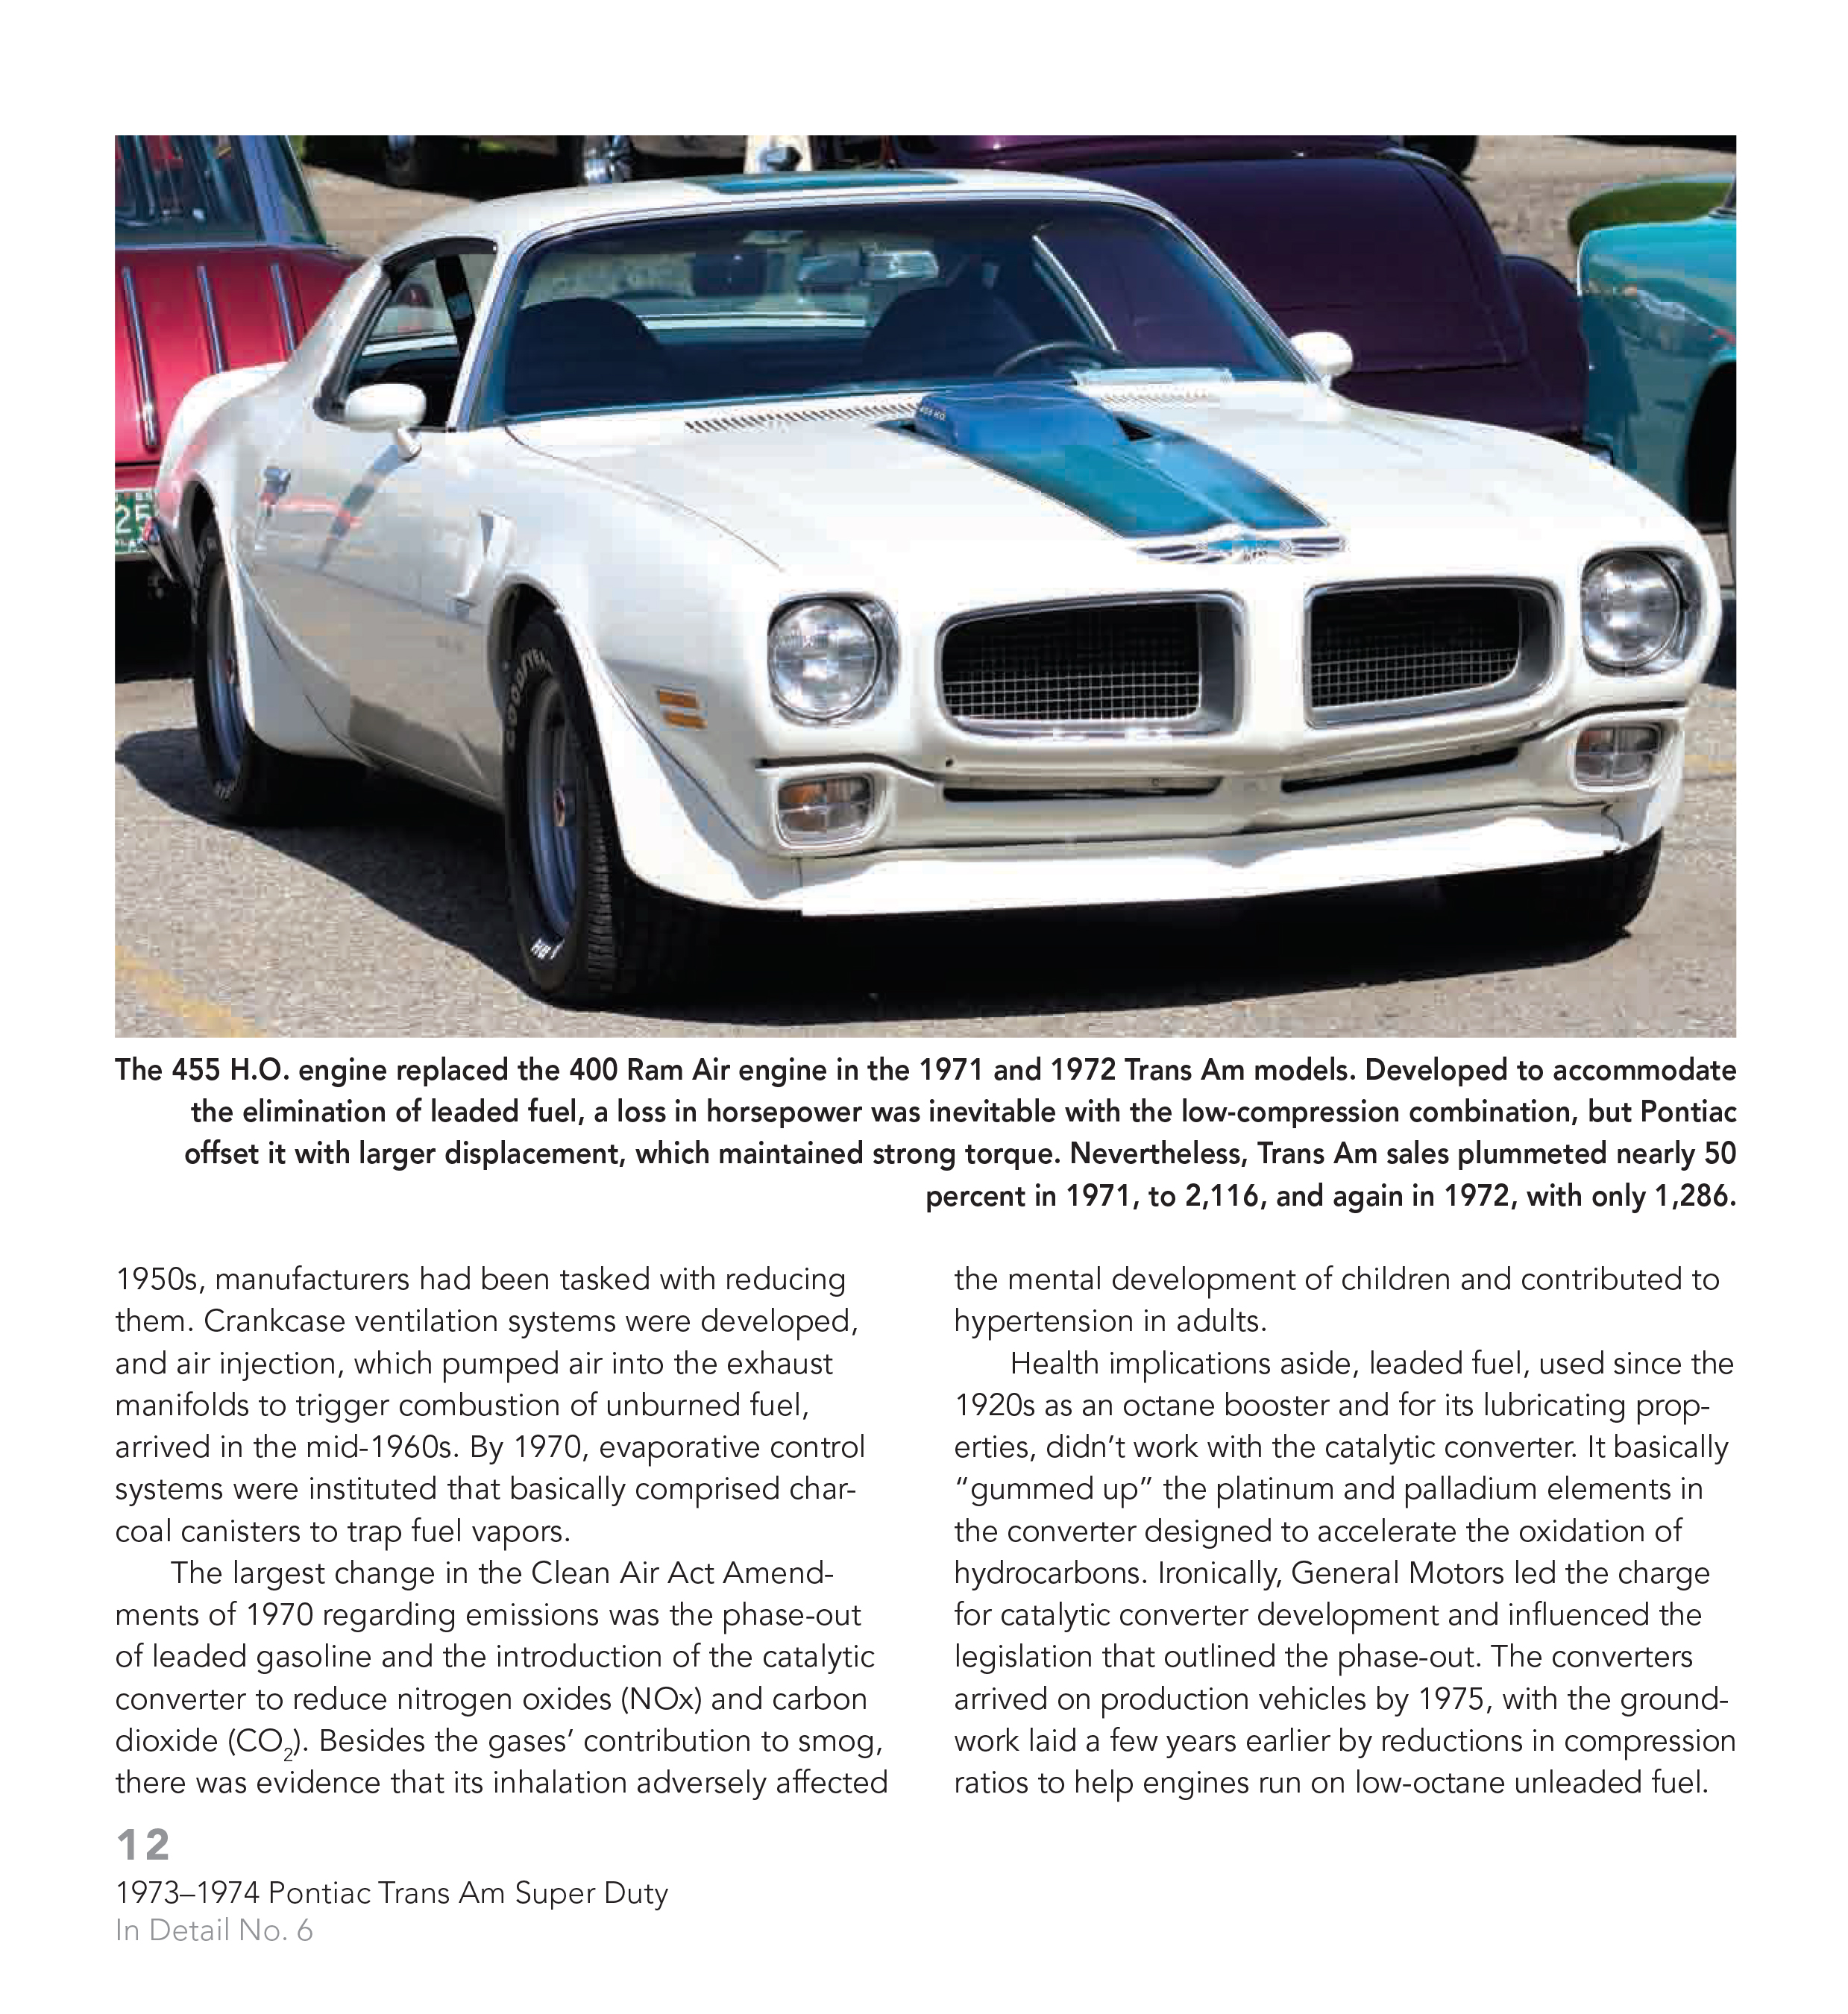 Trans Am 1973 1974 Pontiac Super Duty 455 Muscle Cars In Sentinel Detail Book